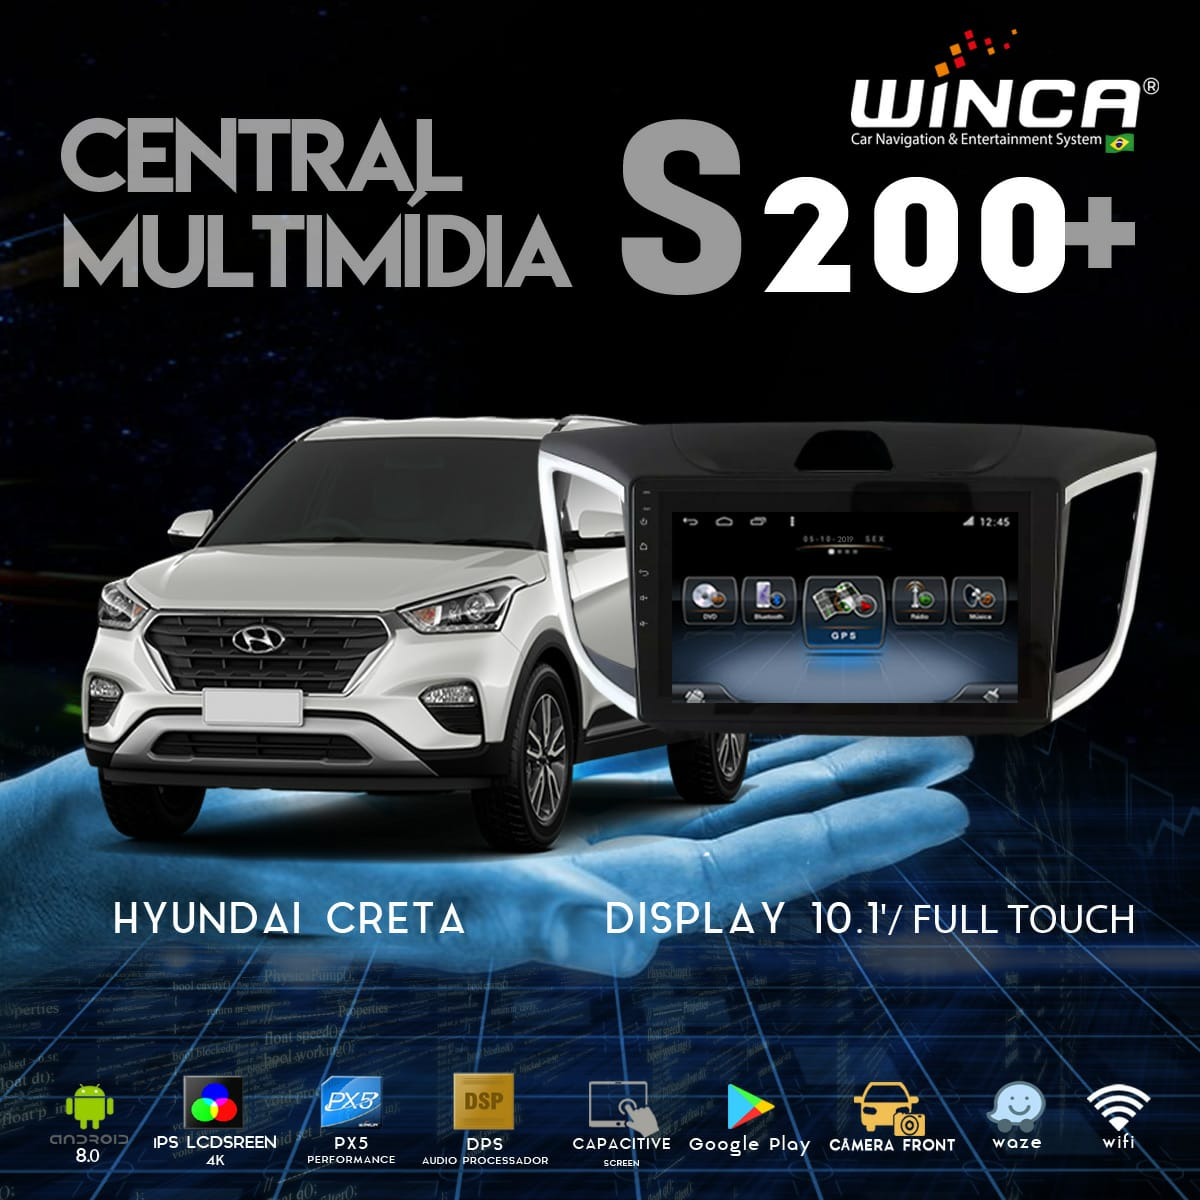 Central Multimidia Hyundai Creta Winca S200 OctaCore Tela 10 pol - Waze Spotify - 2 cameras Ré + Frontal - TV  Digital via APP  - GPS Integrado -  Bluetooth - 2 entradas USB - Android 9.0